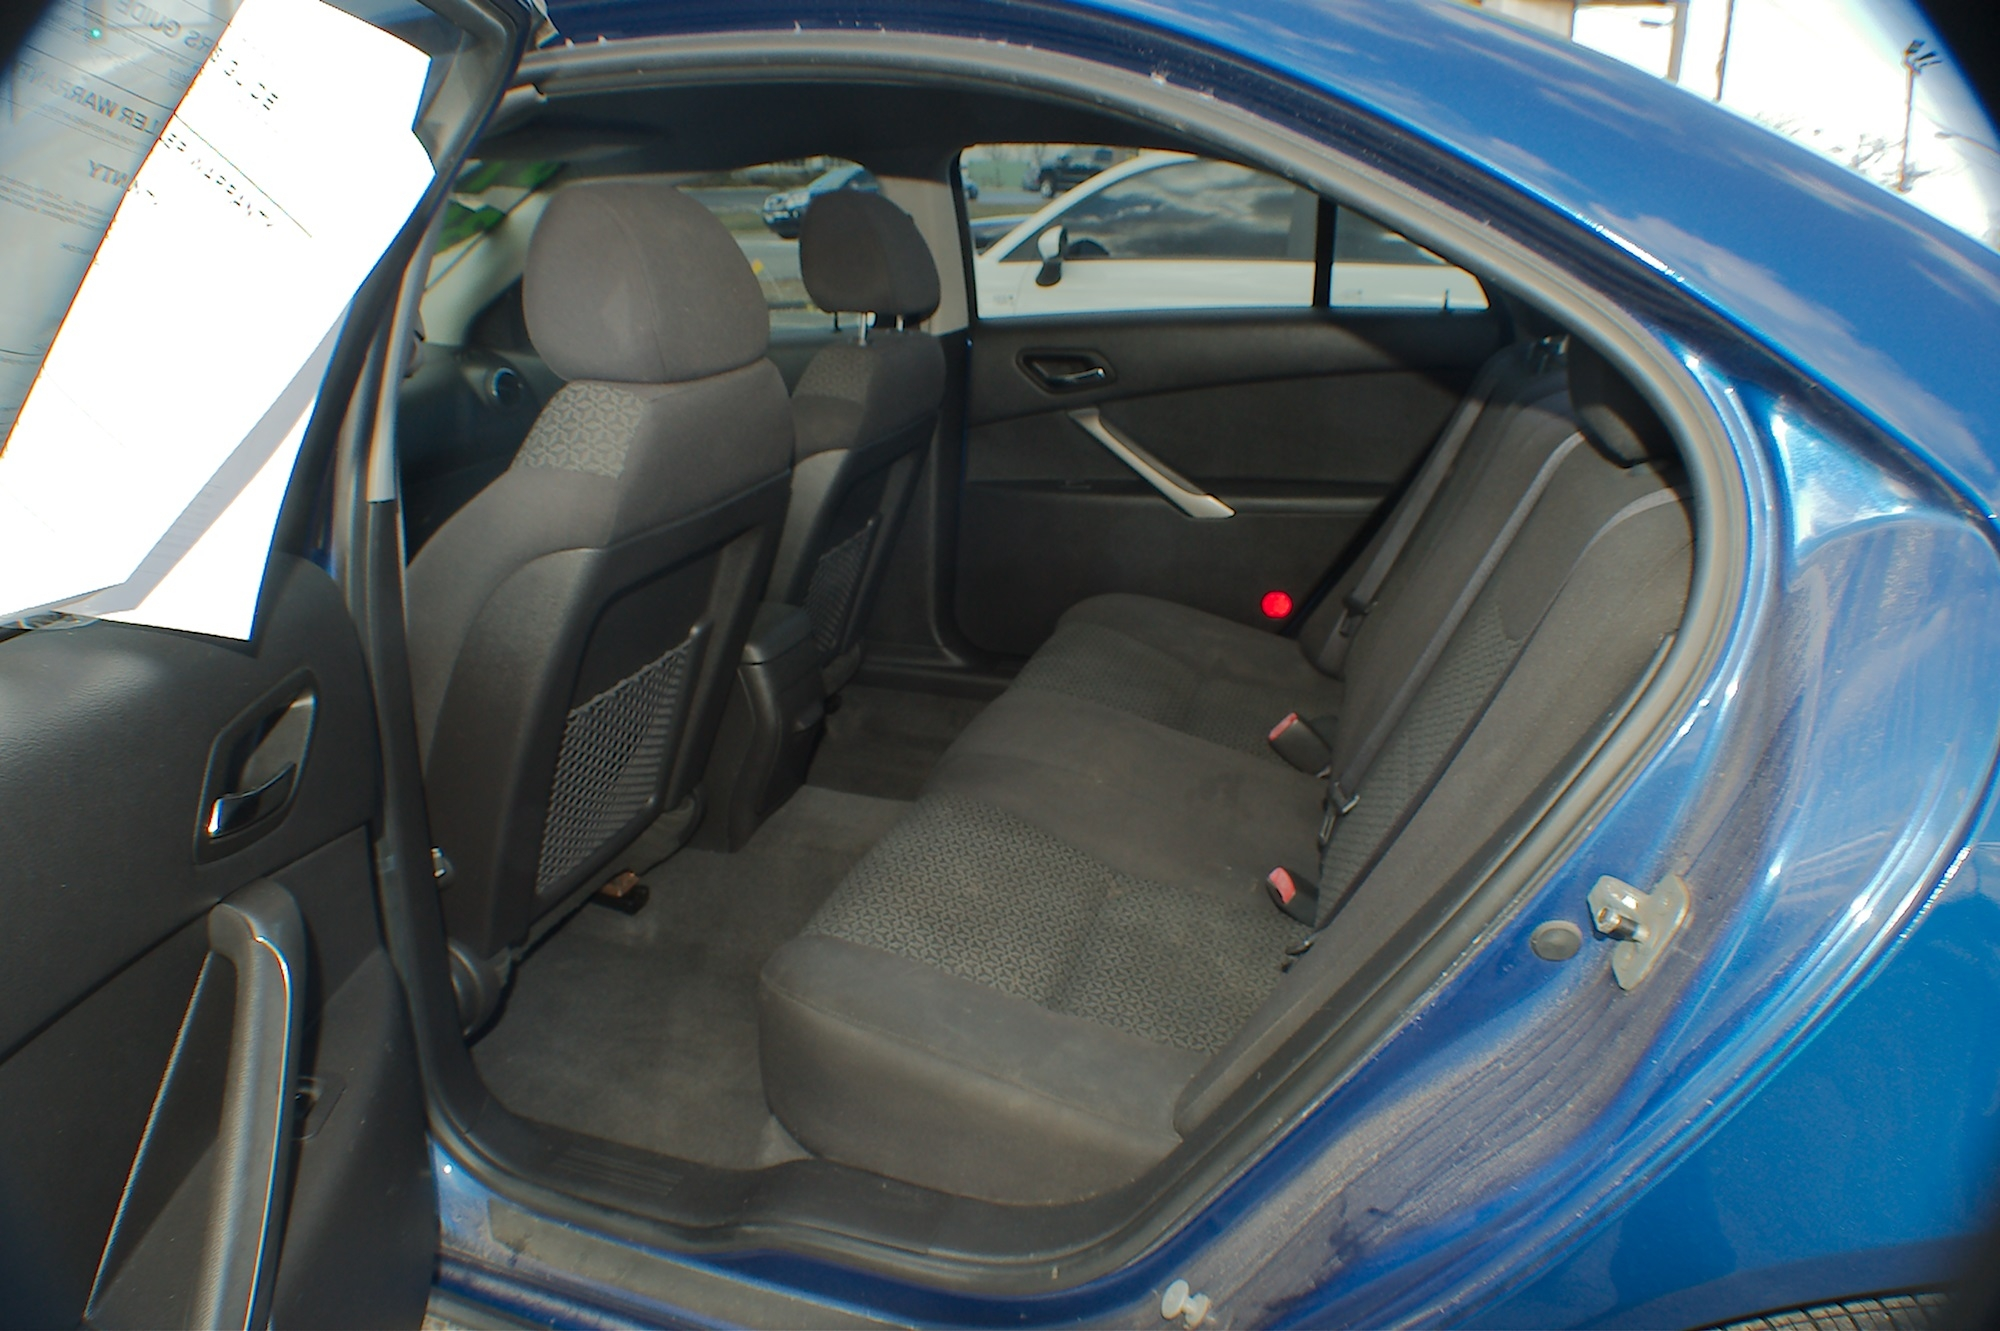 2007 Pontiac G6 Blue Sedan Used Car Sale Libertyville Lincolnshire Lindenhurst